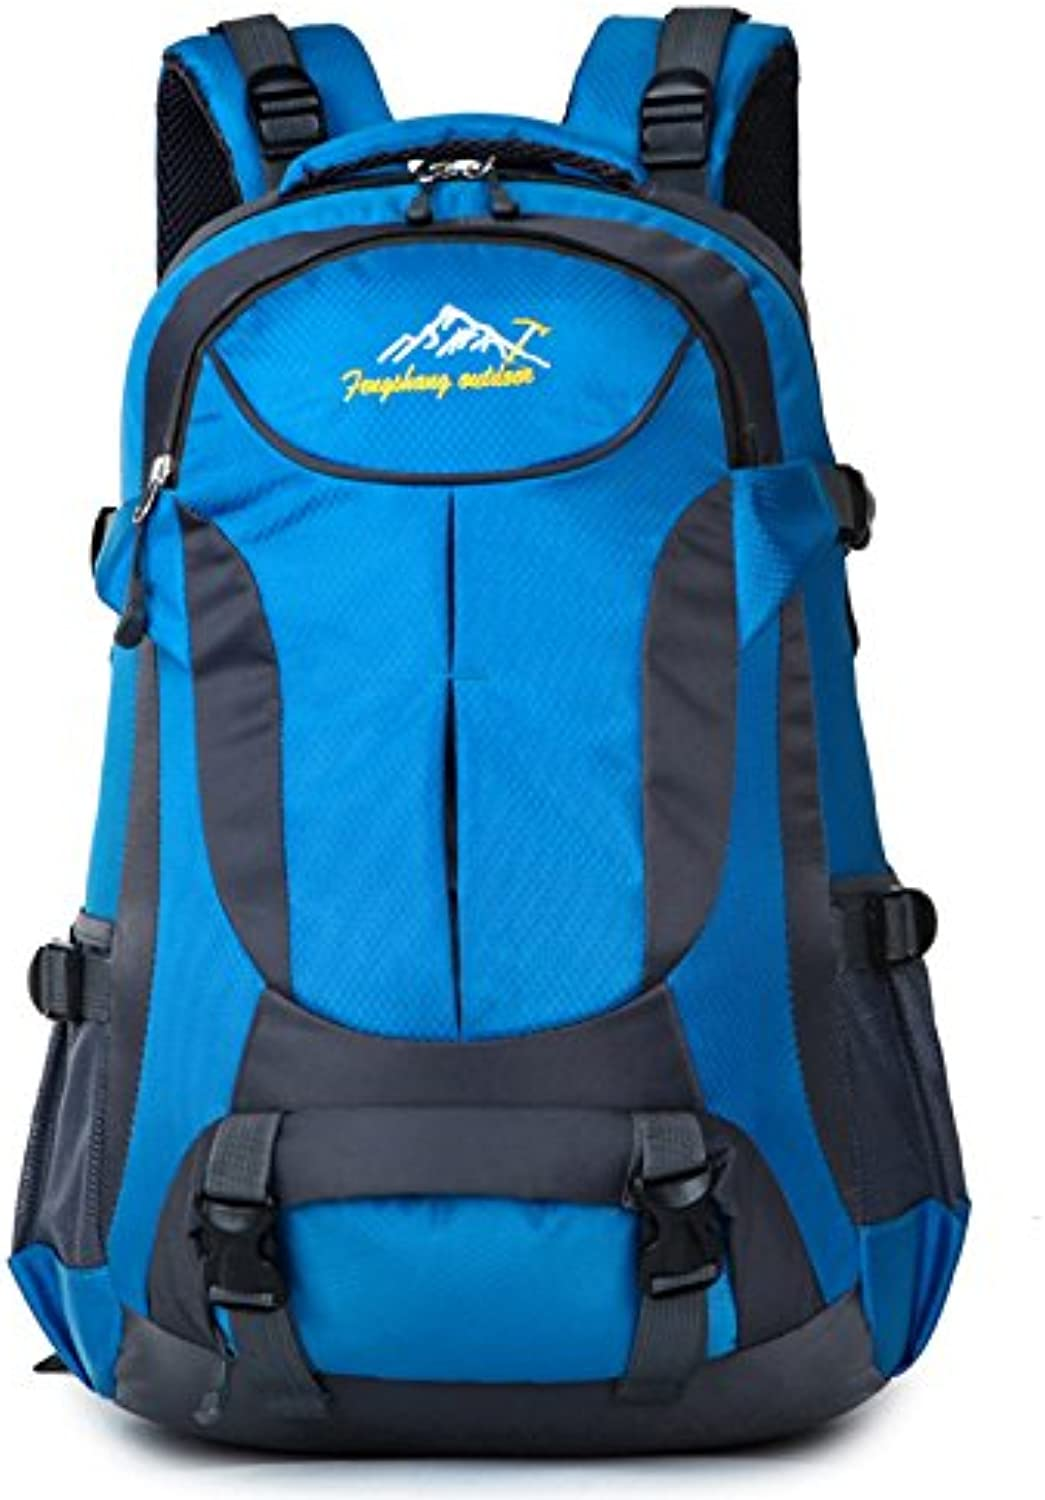 GWQGZ New Leisure Outdoor Mountaineering Bag